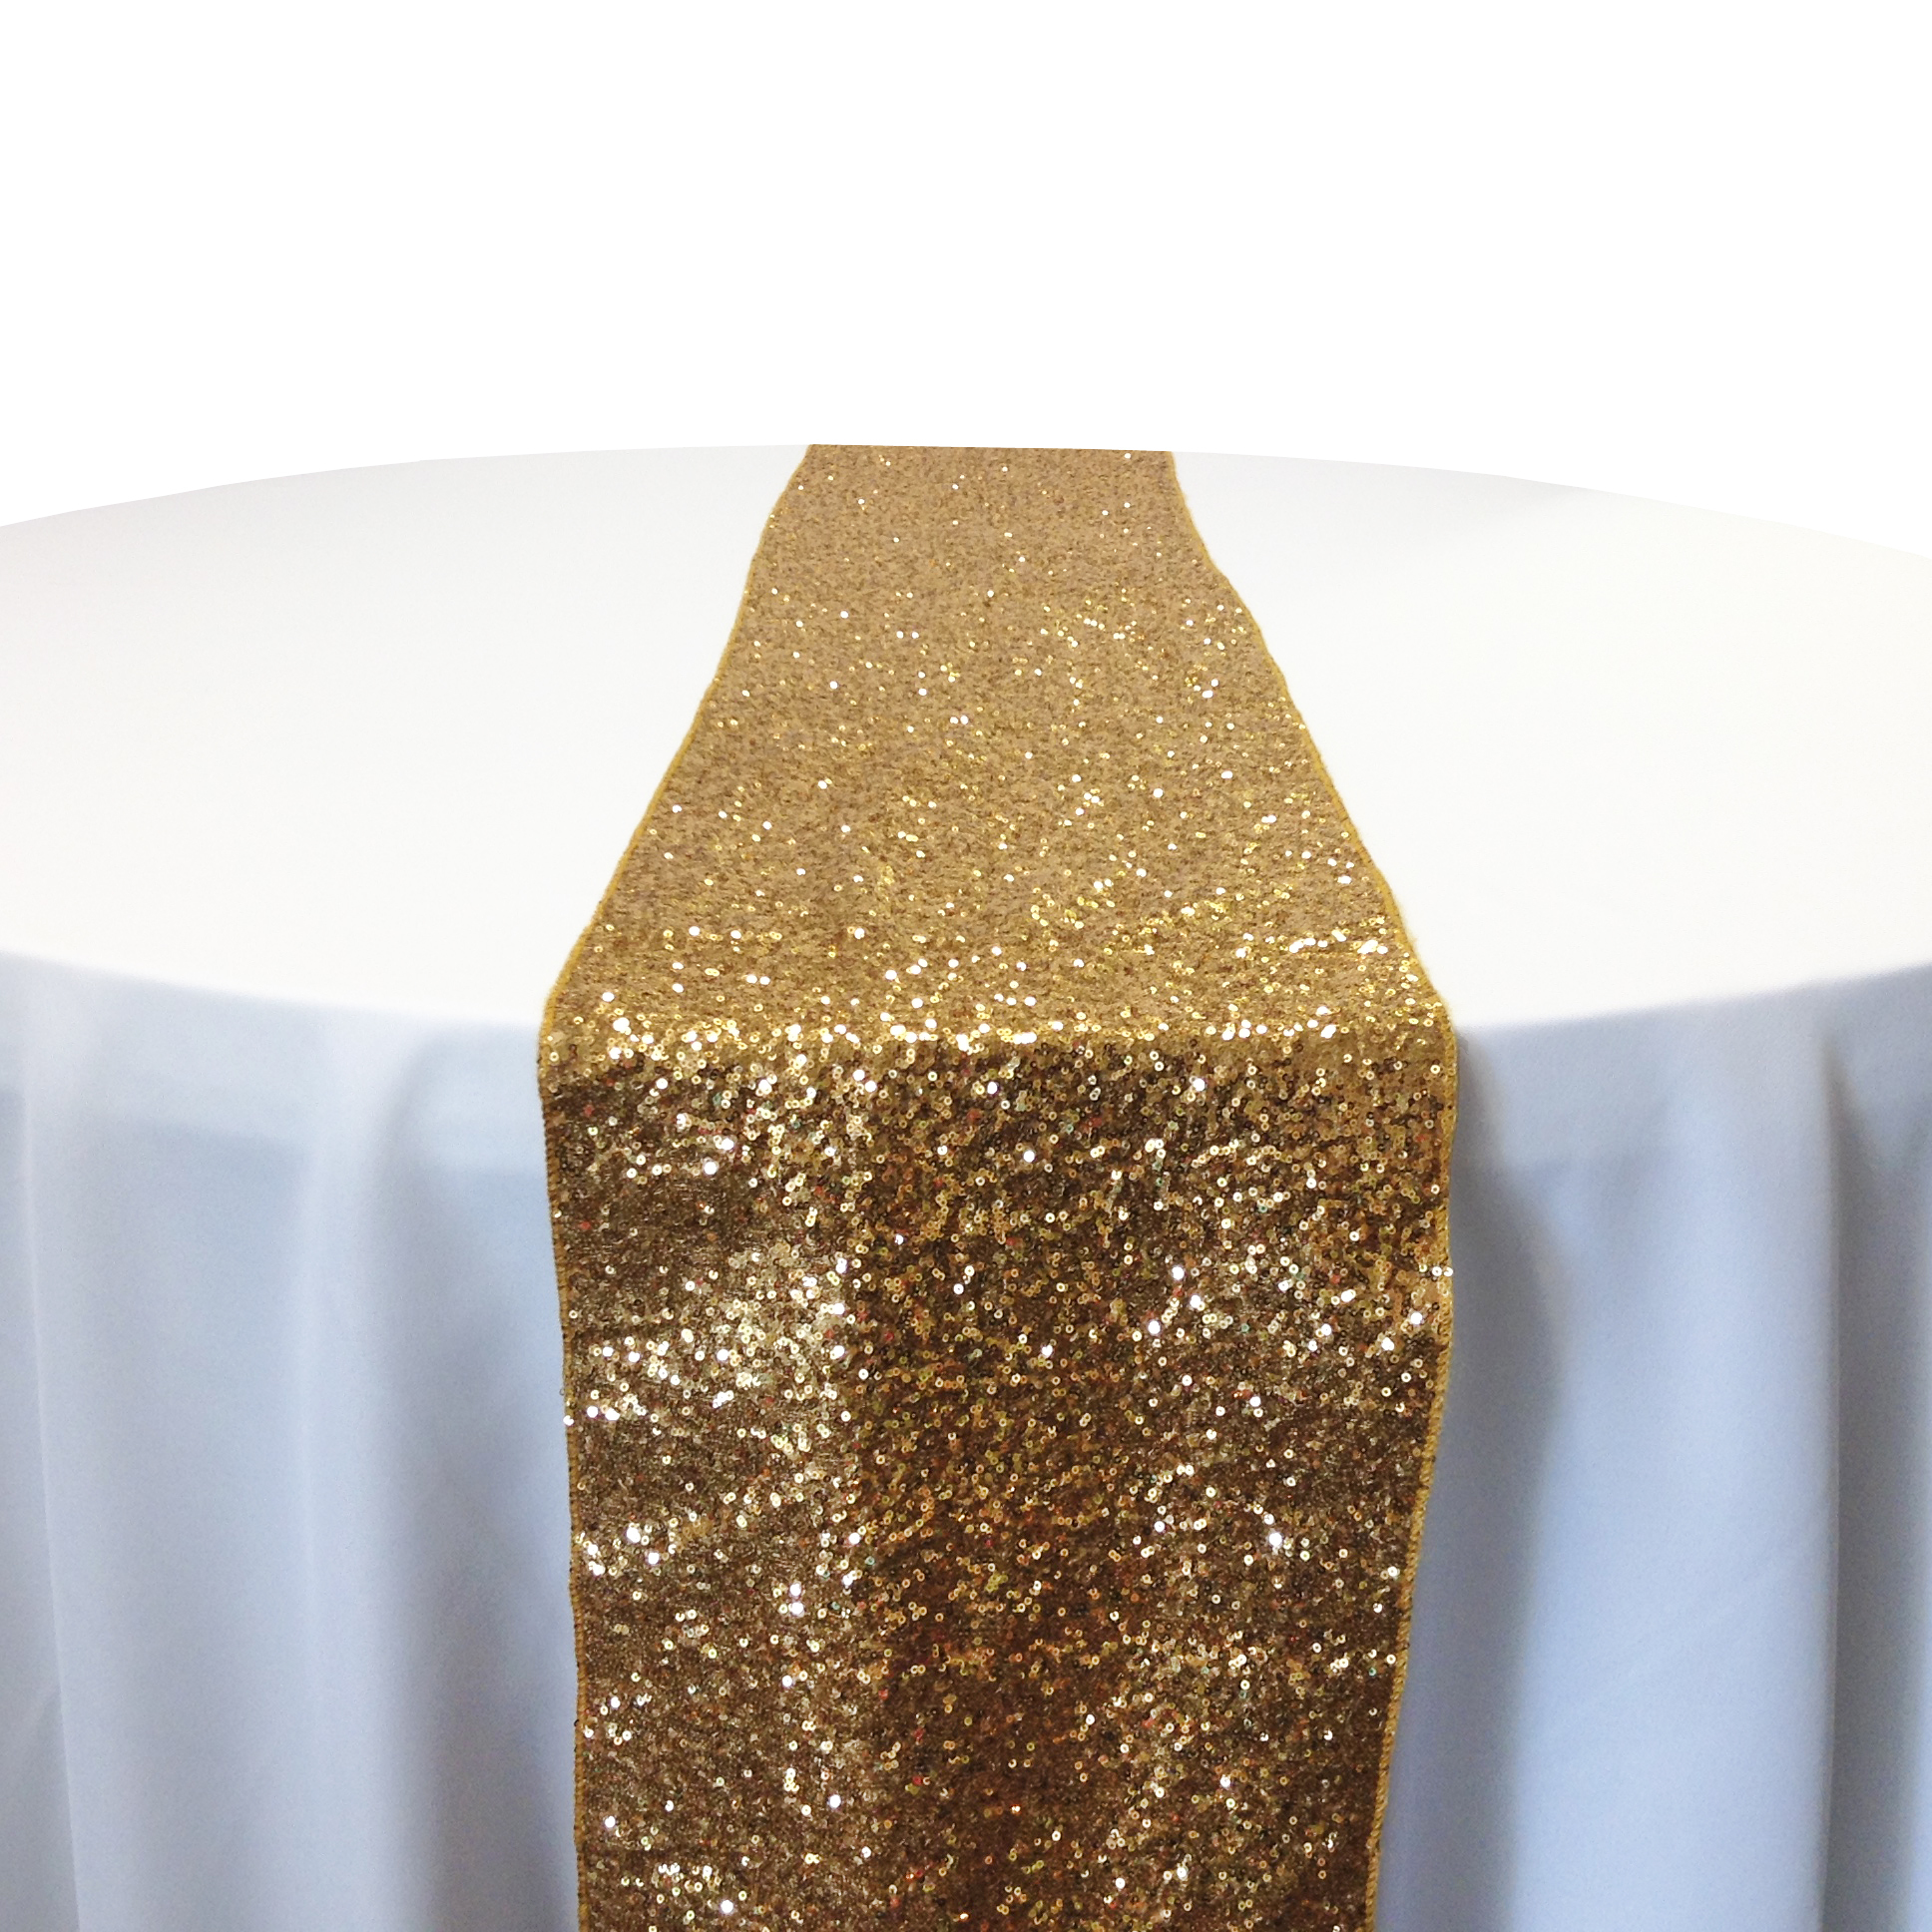 Gold Taffeta Sequin Table Runner Rental Gold Taffeta Glitz Table Runner Rental